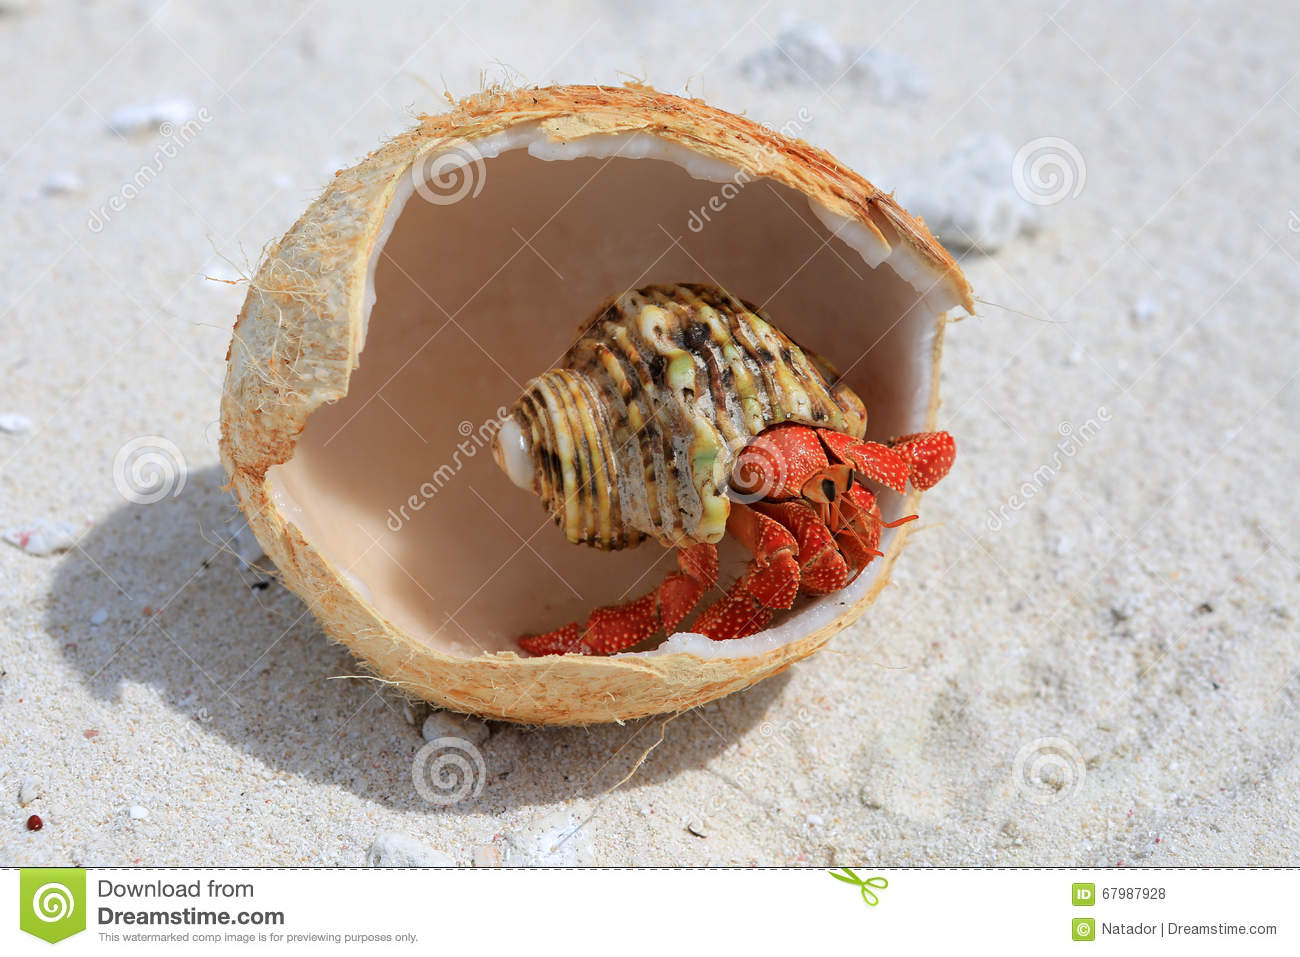 coconut crab eating